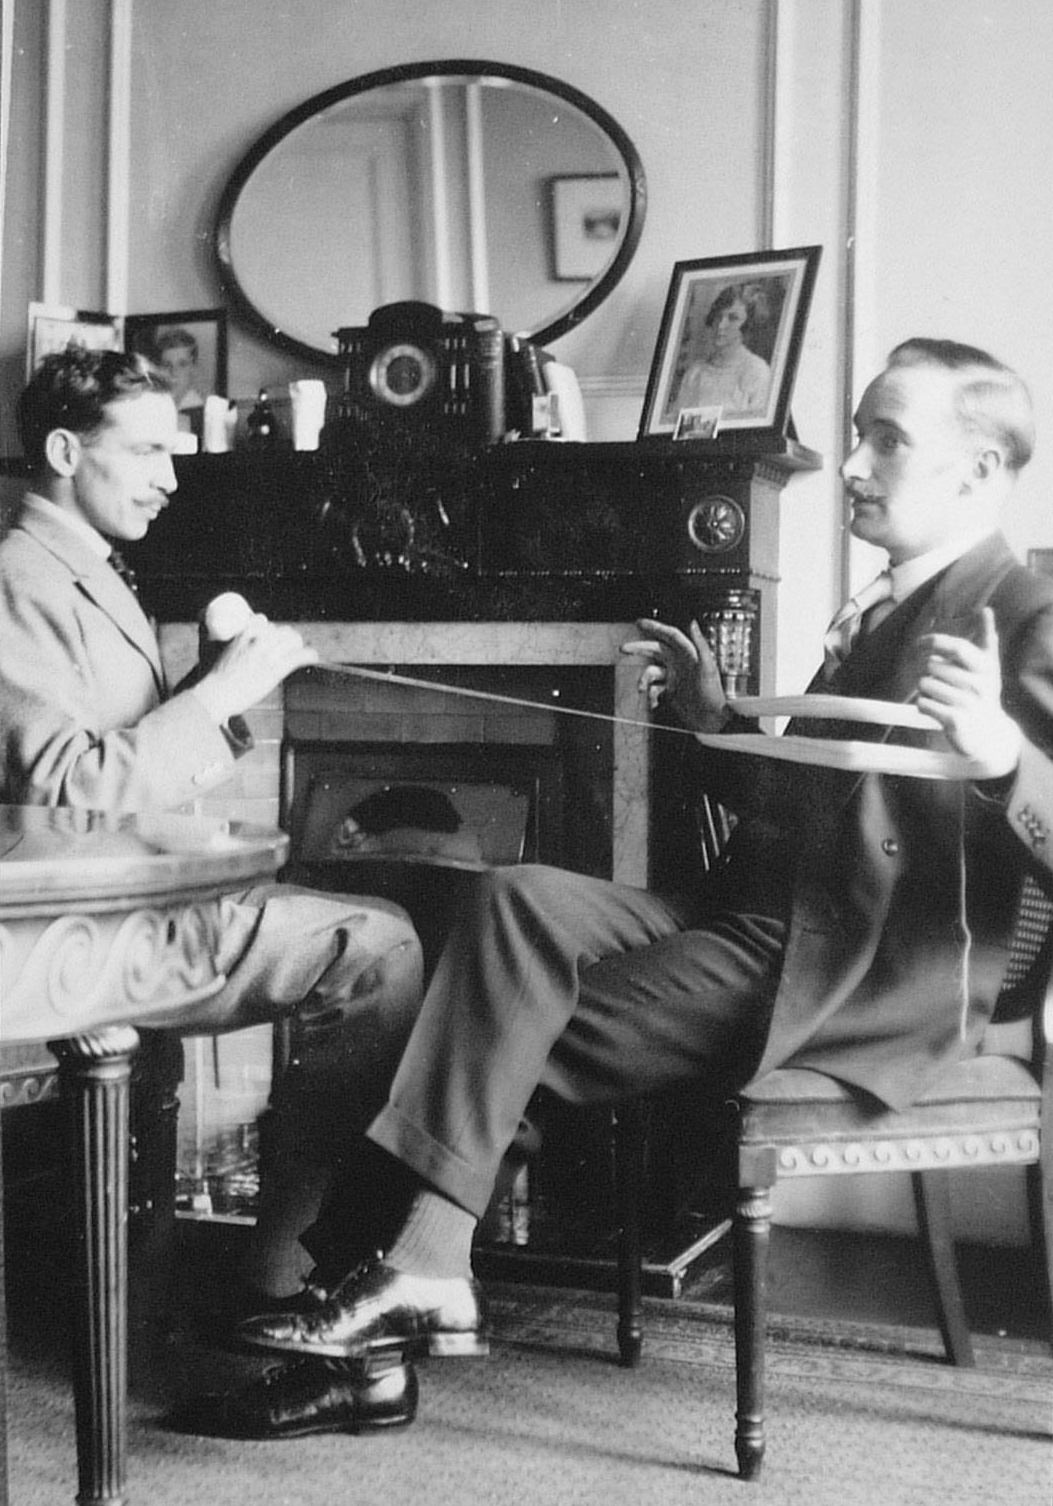 The earliest-known photograph of Gerald Heard — assisting Leonard Elmhirst winding a ball of yarn —Seymour Hotel, 1925. - Elmhirst's humorous description of this is as follows: